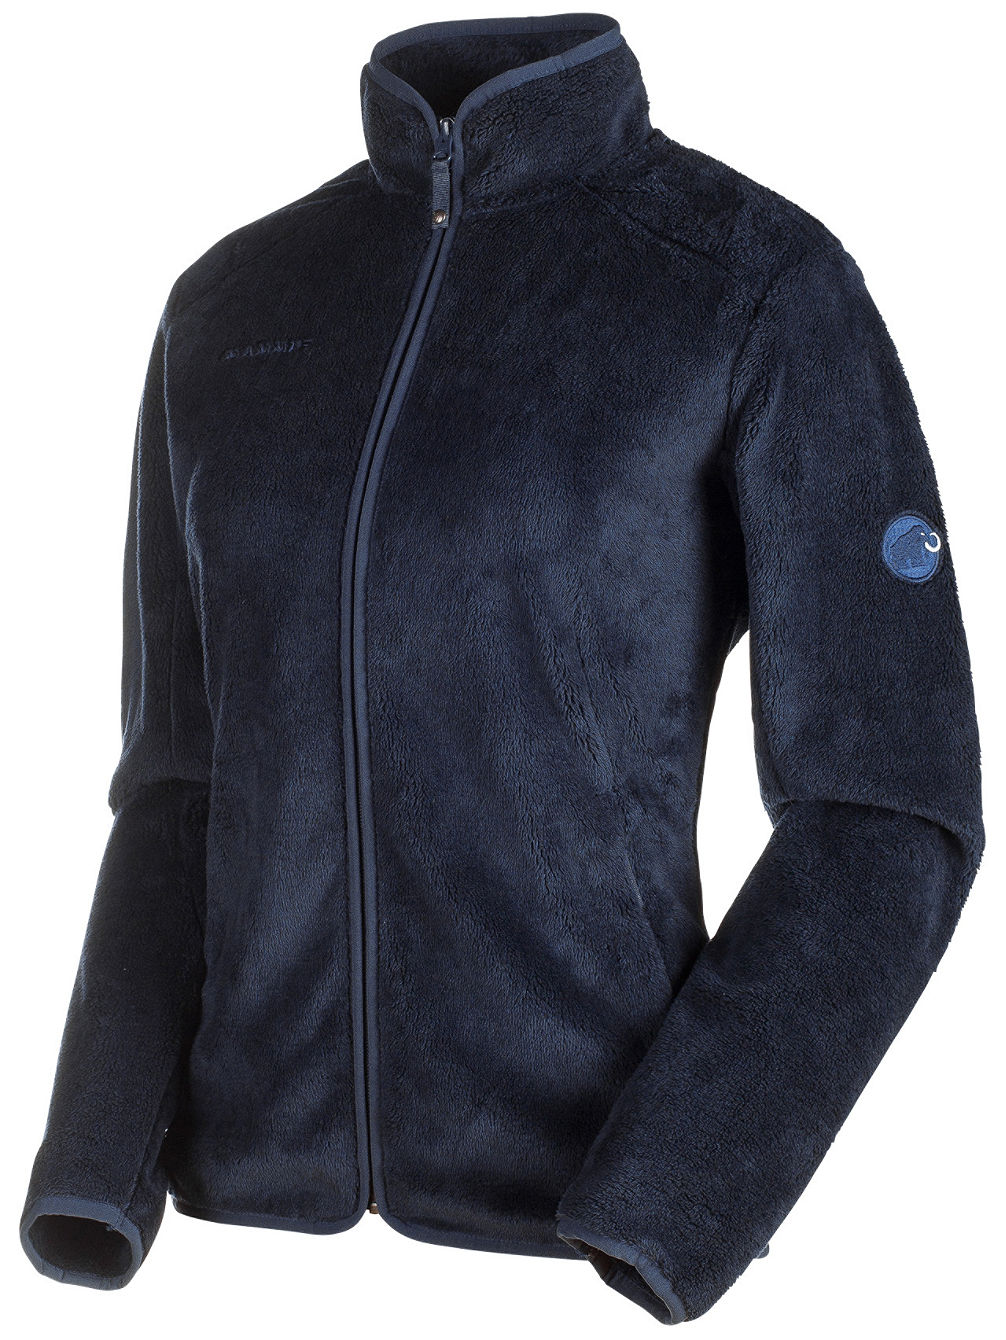 Yampa Tour Ml Fleece Jacket